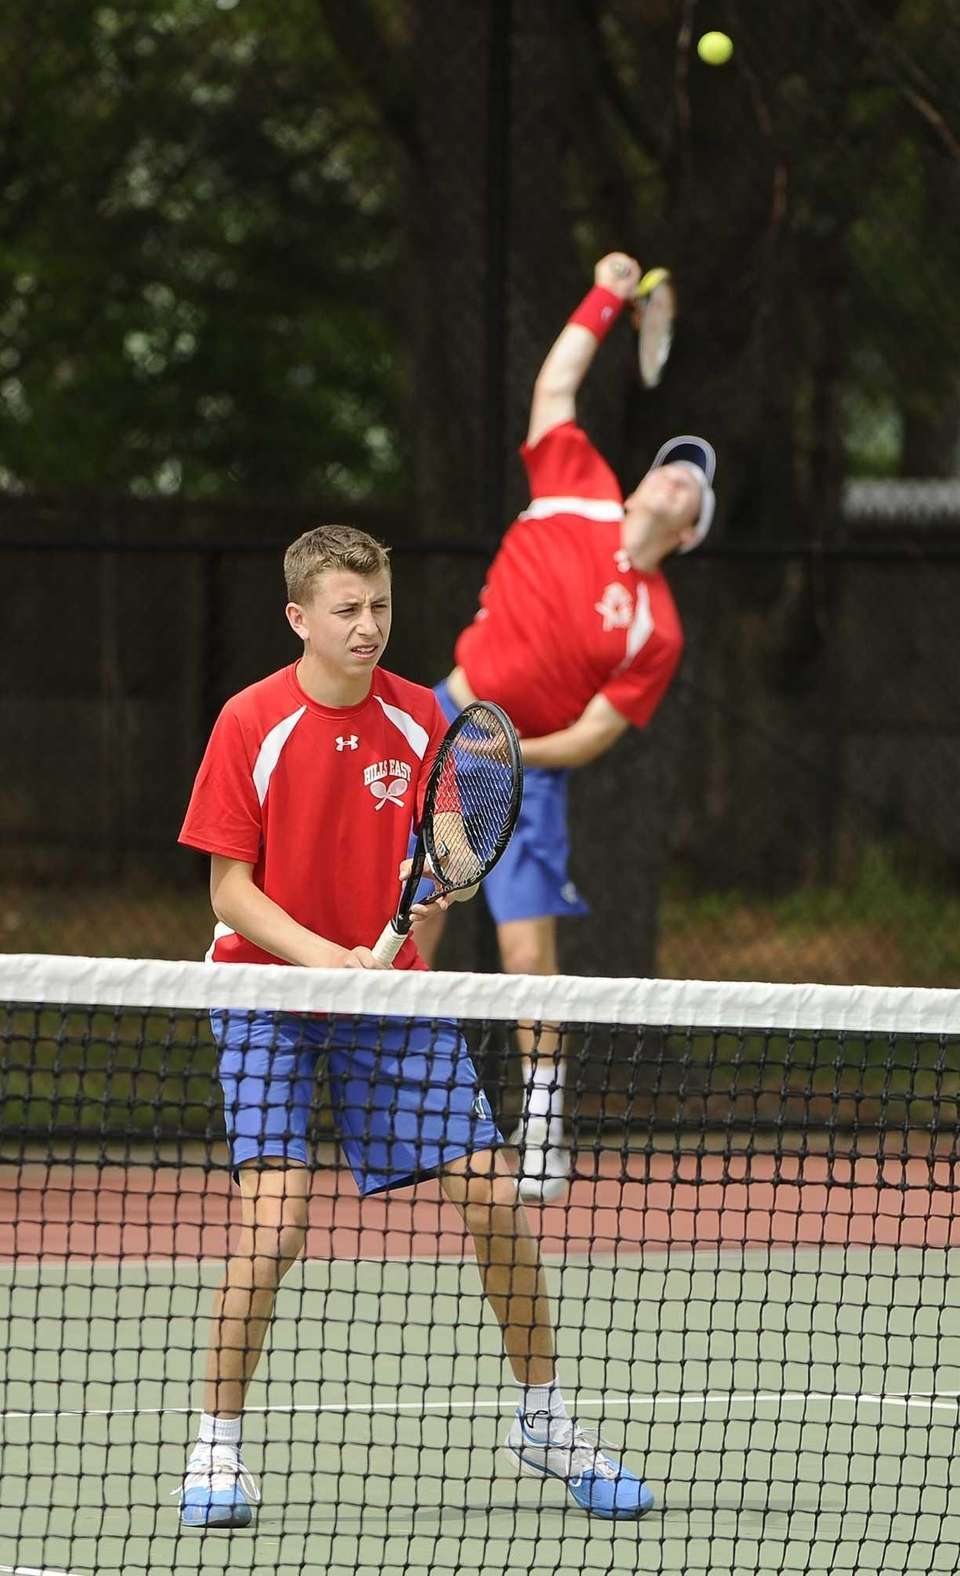 Half Hollow Hills East's doubles partners Kyle Alper,